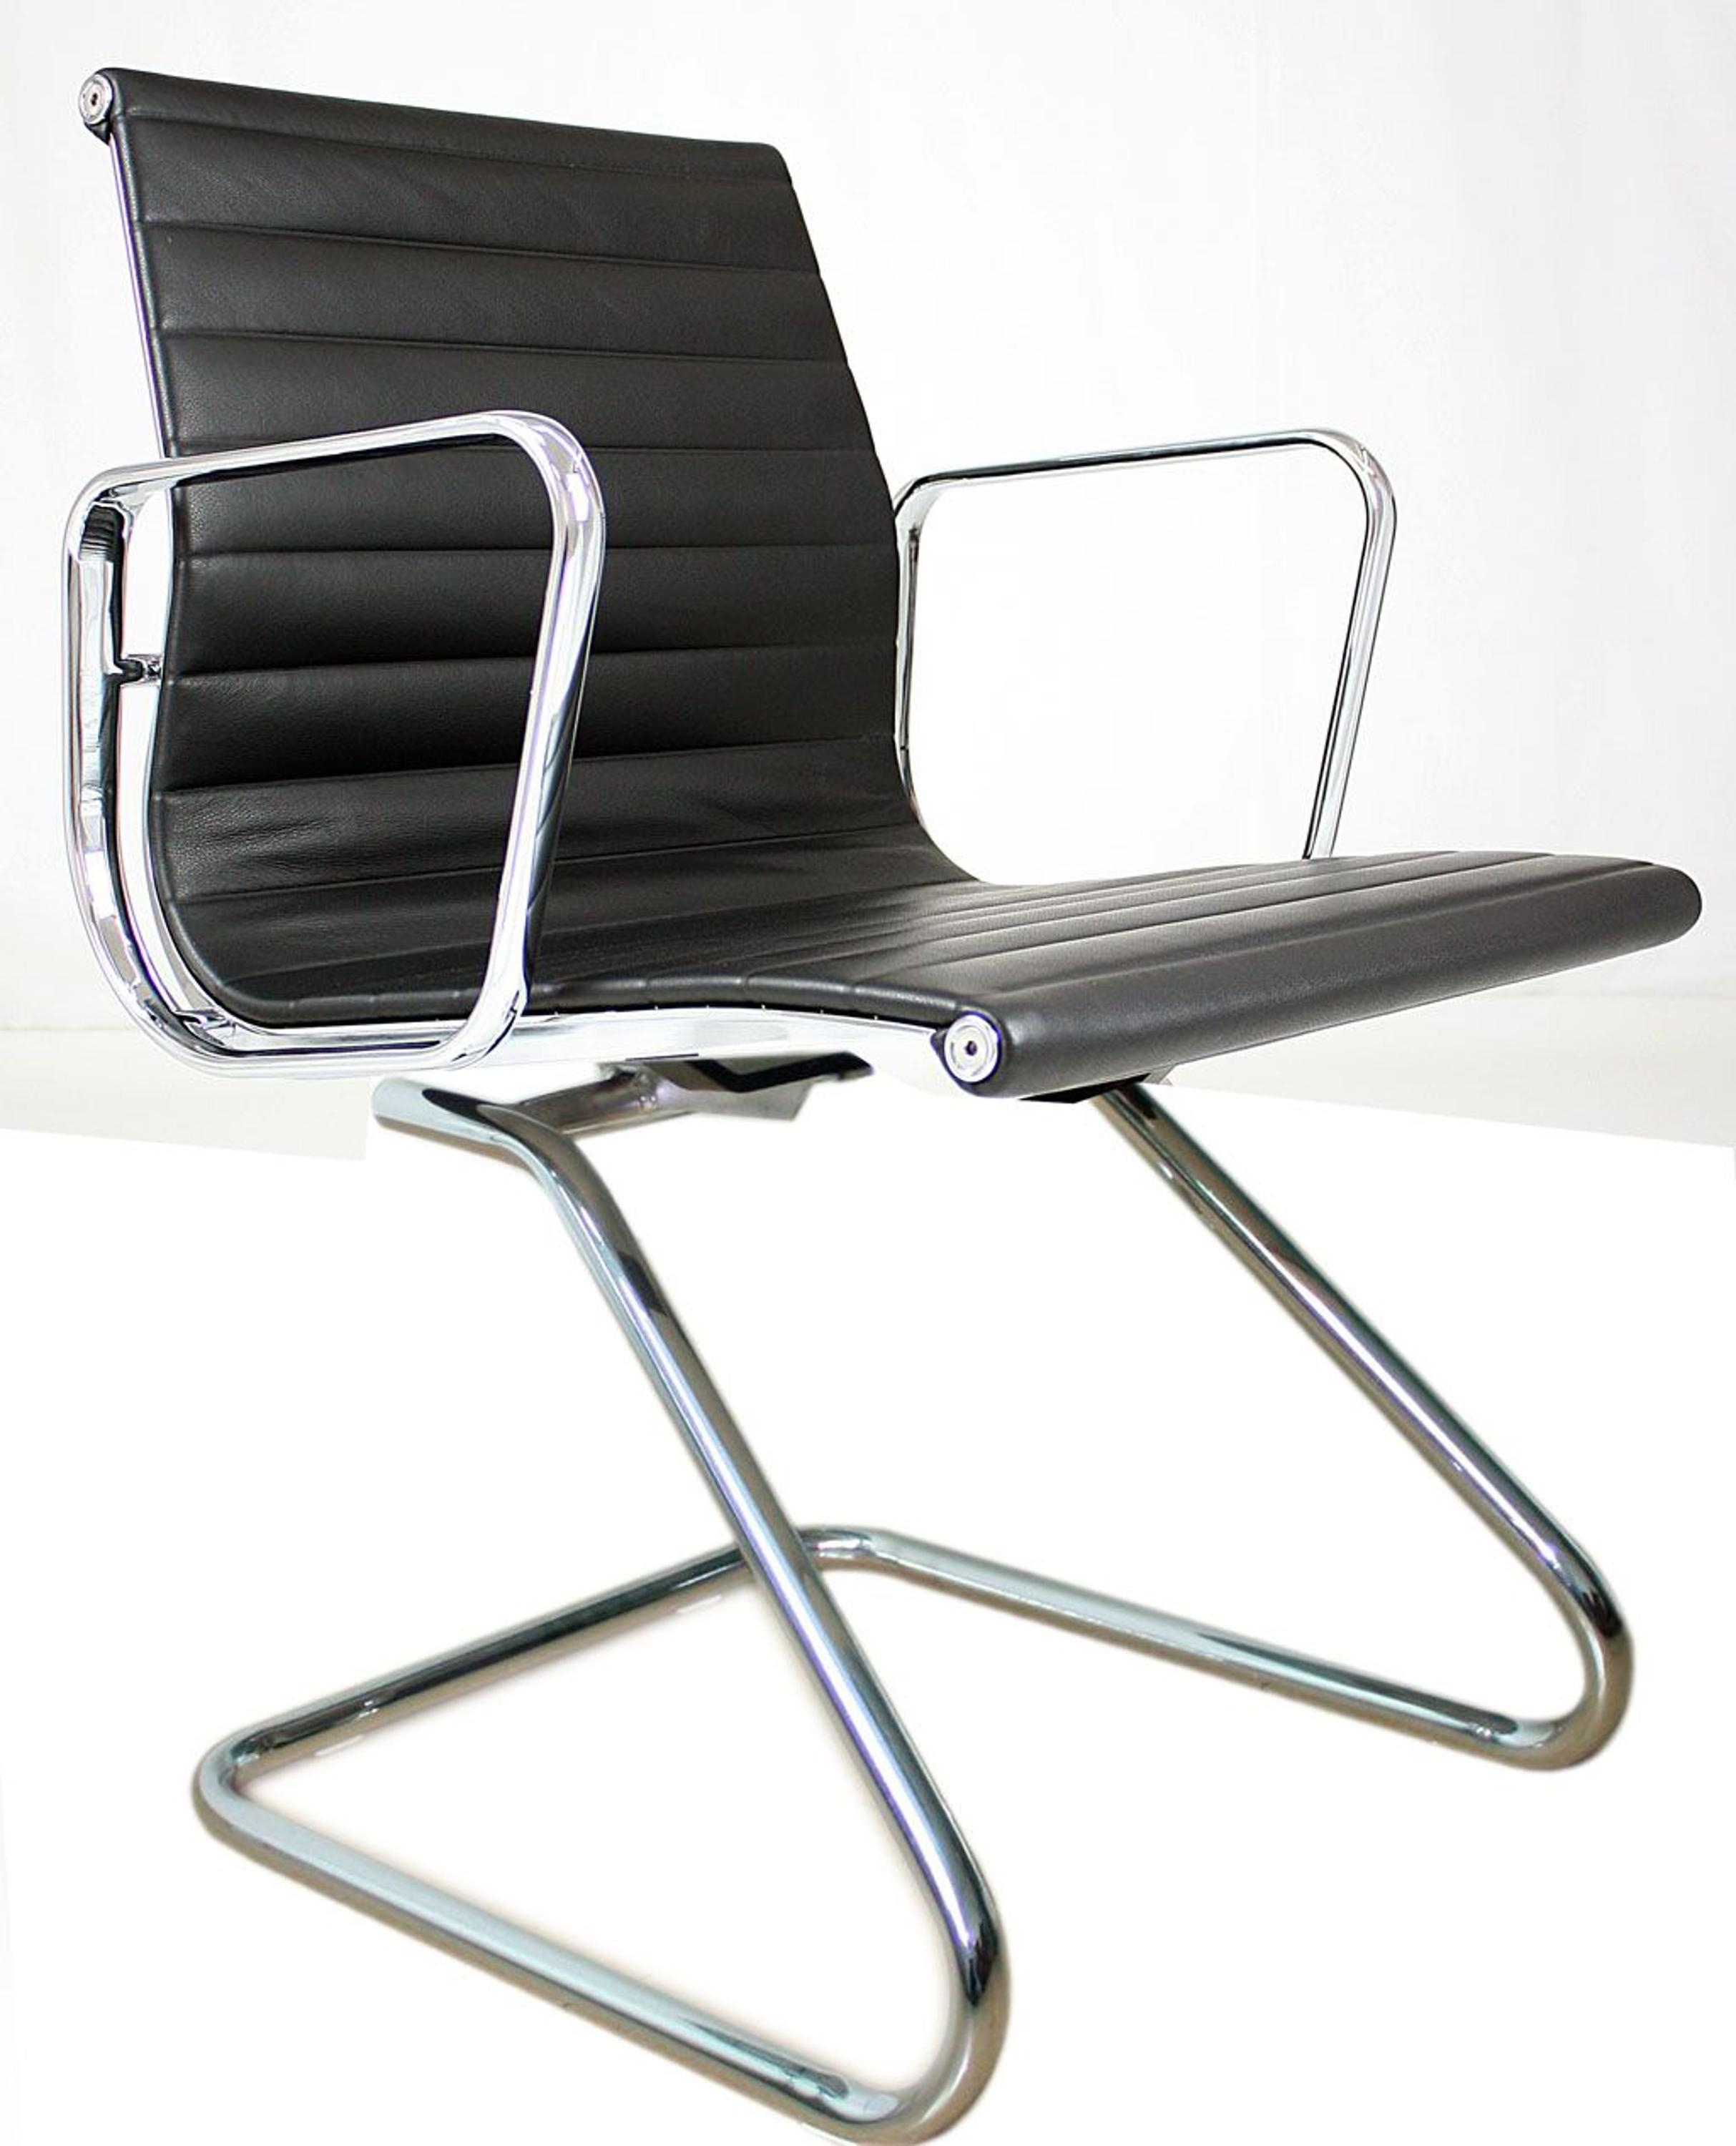 Chair With Round Base No Wheels 12 4 Internist Dr Horn De